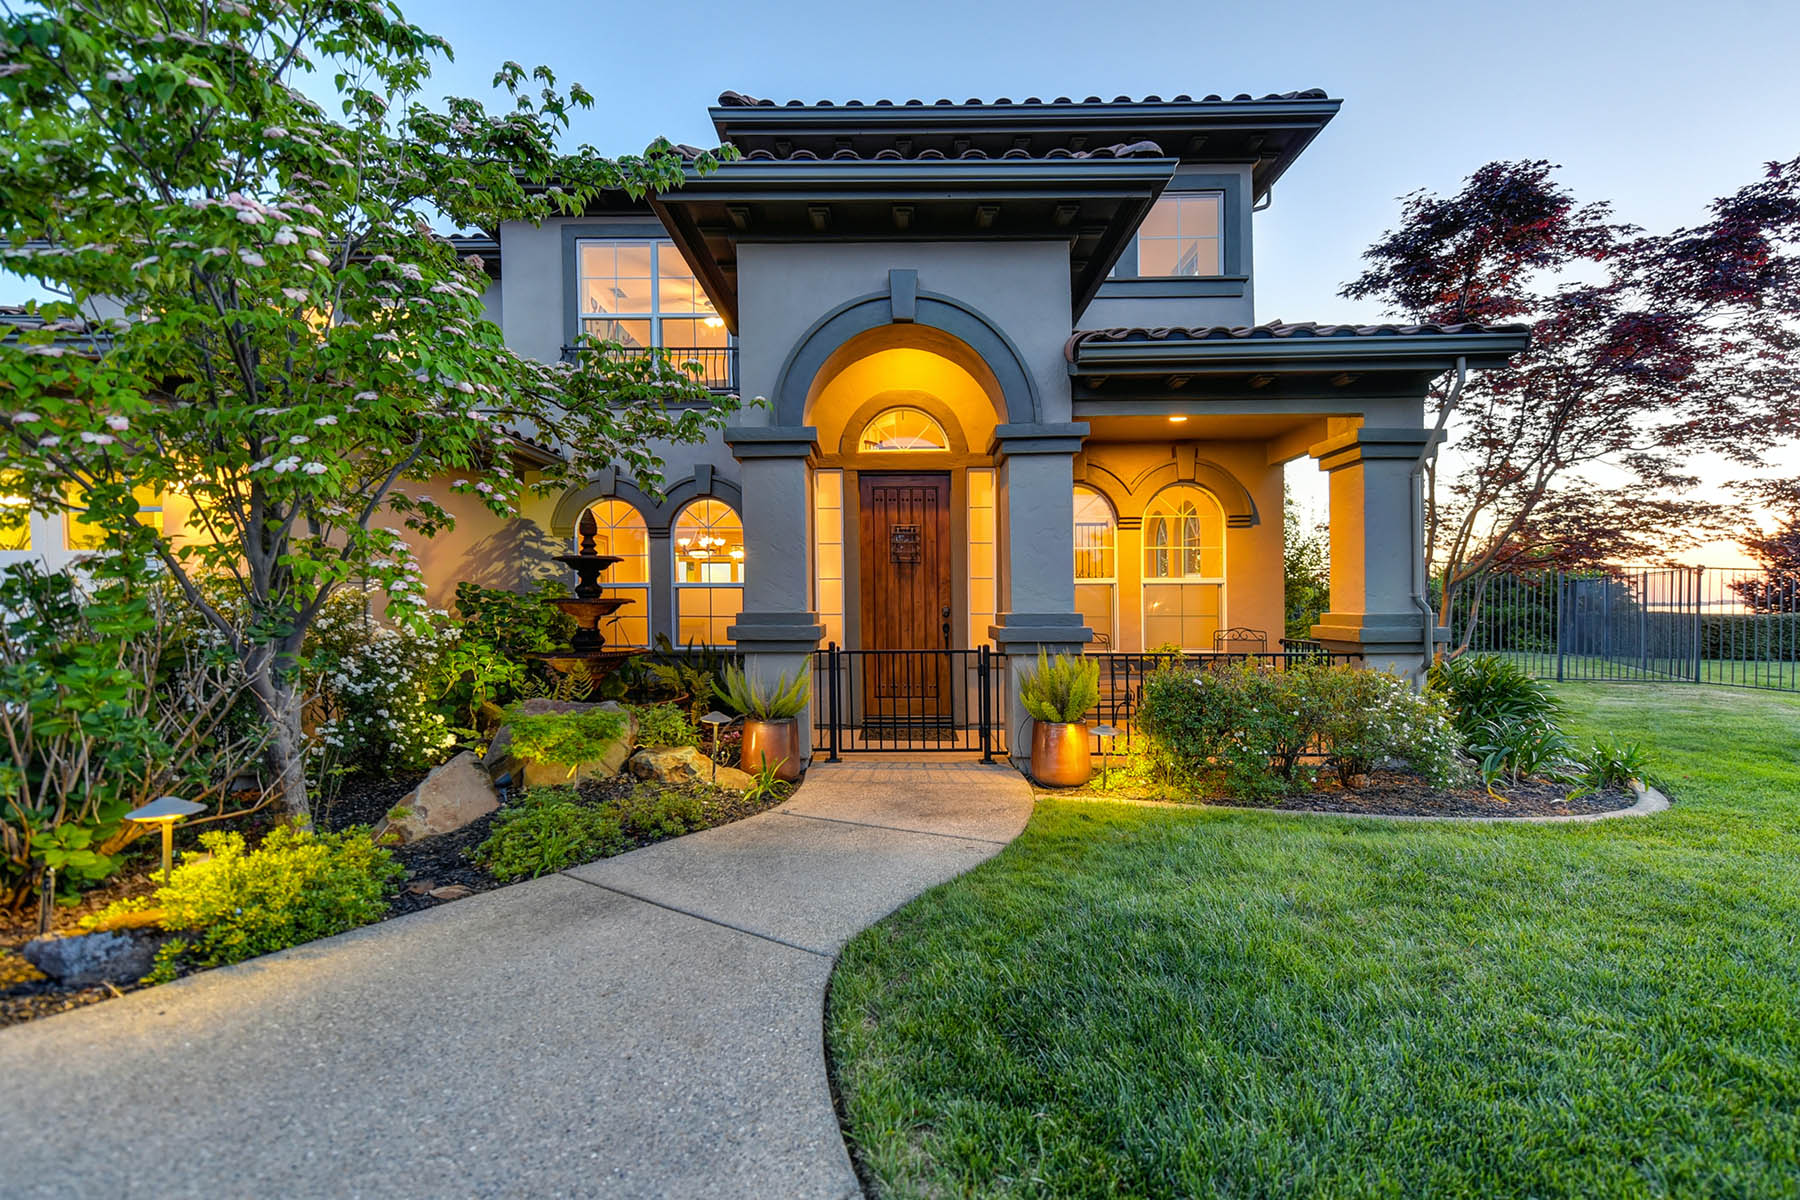 Myths About FHA Loans in California